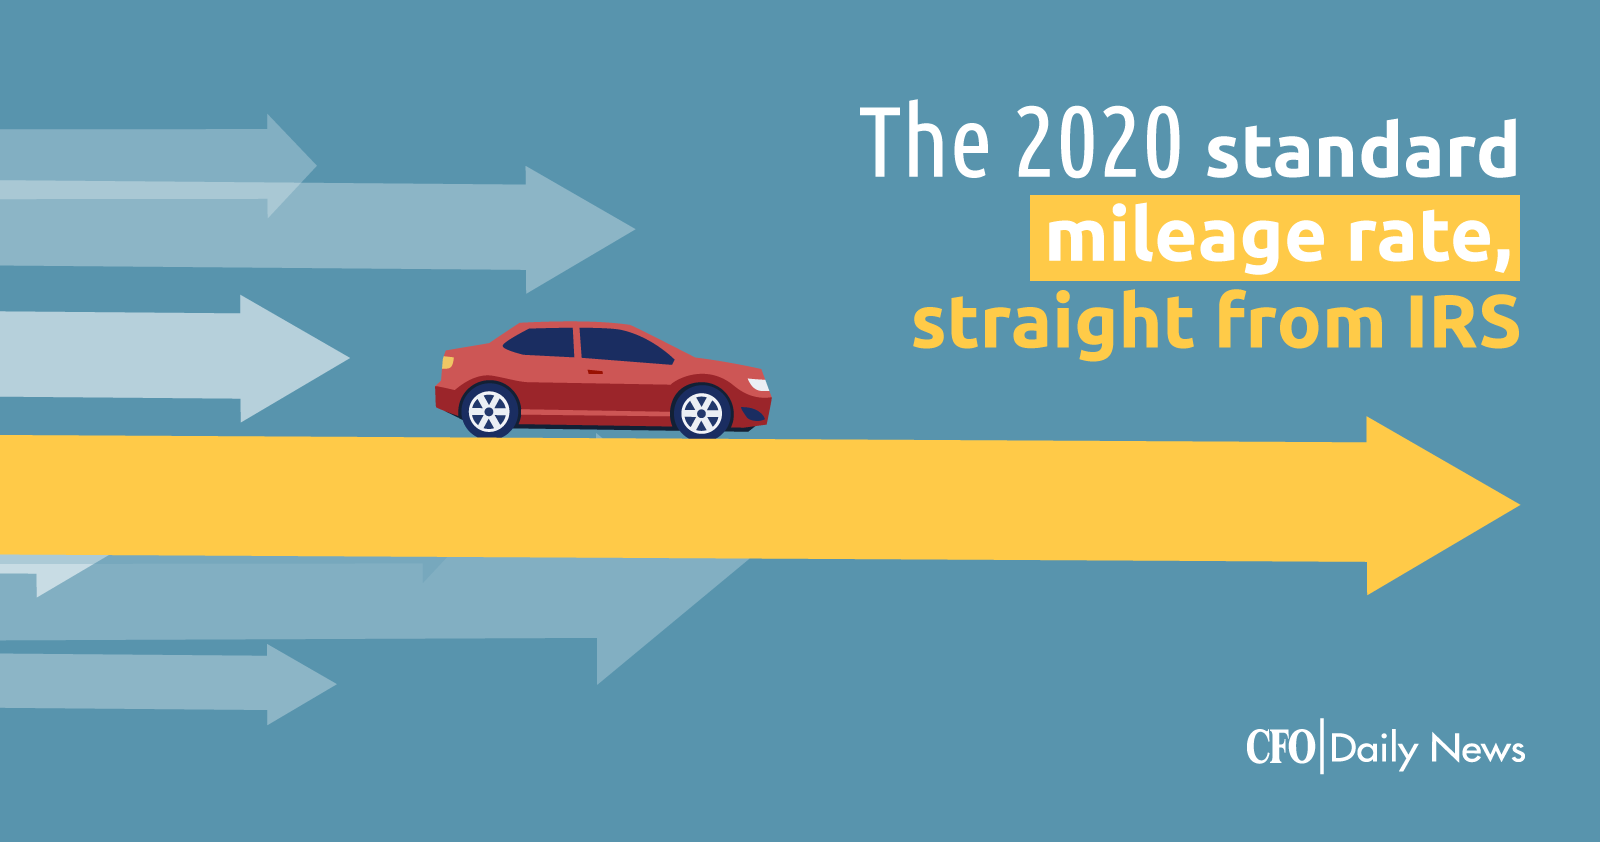 The 2020 standard mileage rate straight from IRS